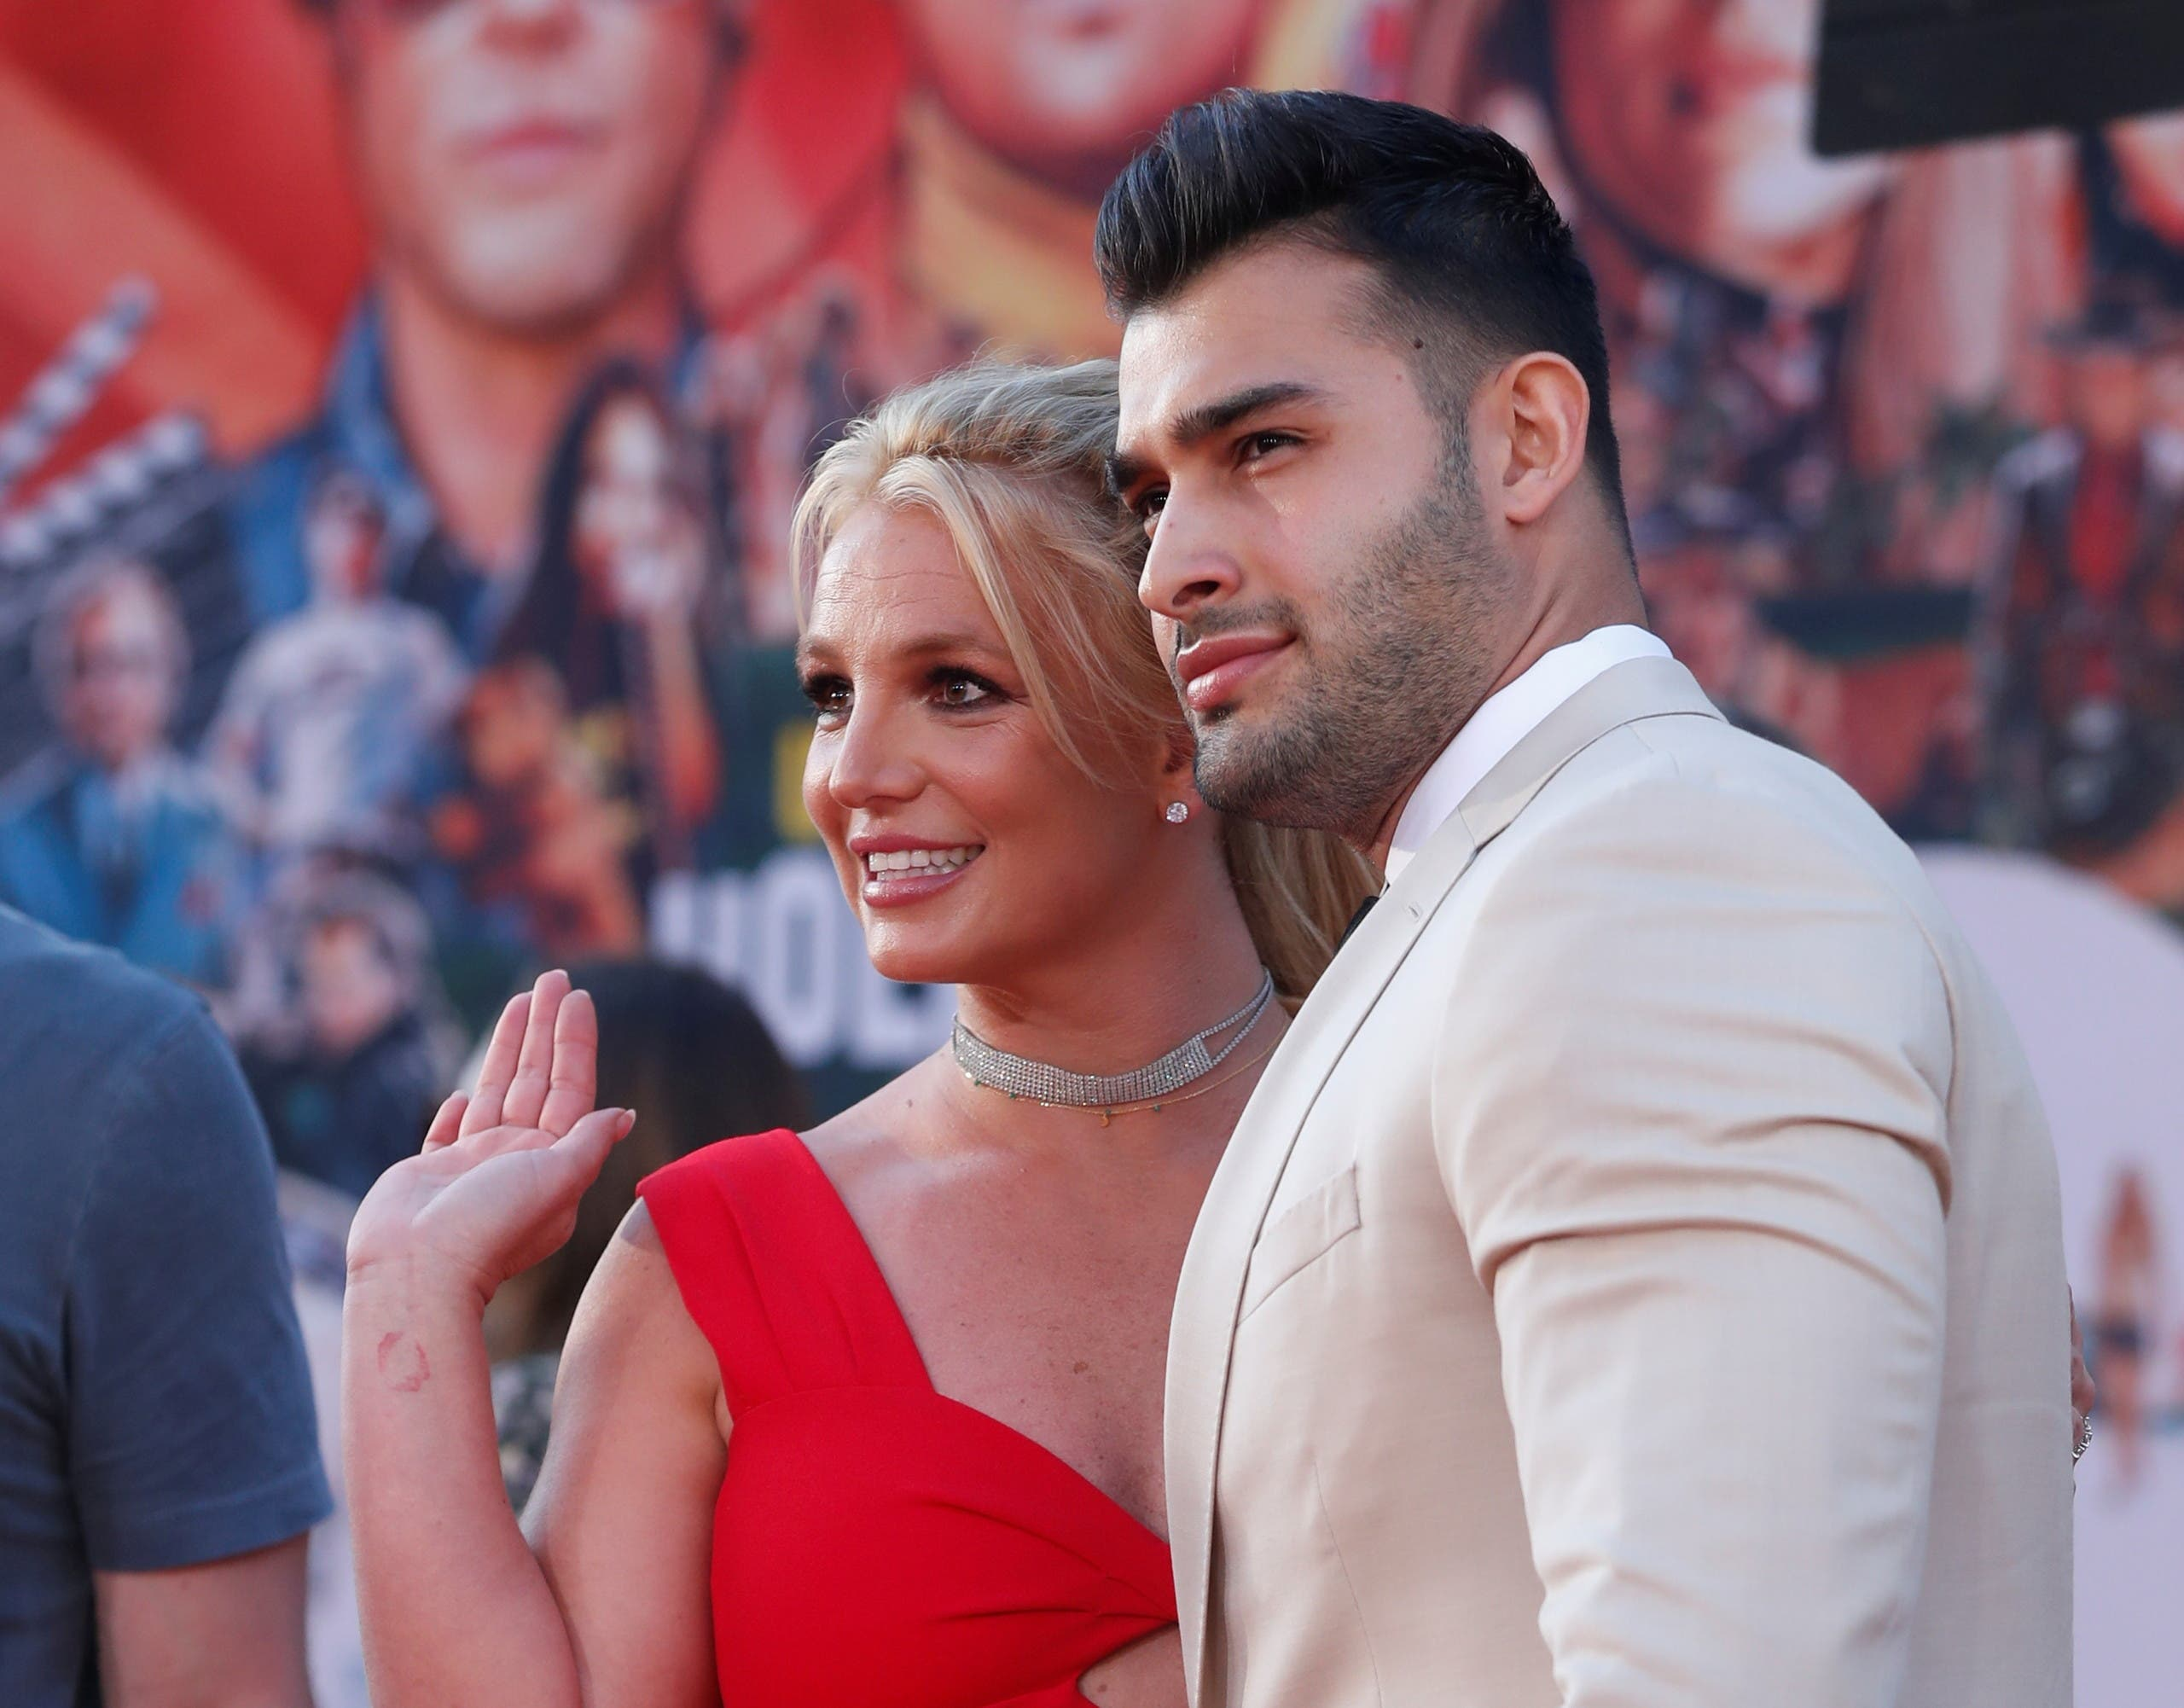 Britney Spears and Sam Asghari pose at the premiere of Once Upon a Time In Hollywood in Los Angeles, California, US, July 22, 2019. (File photo: Reuters)